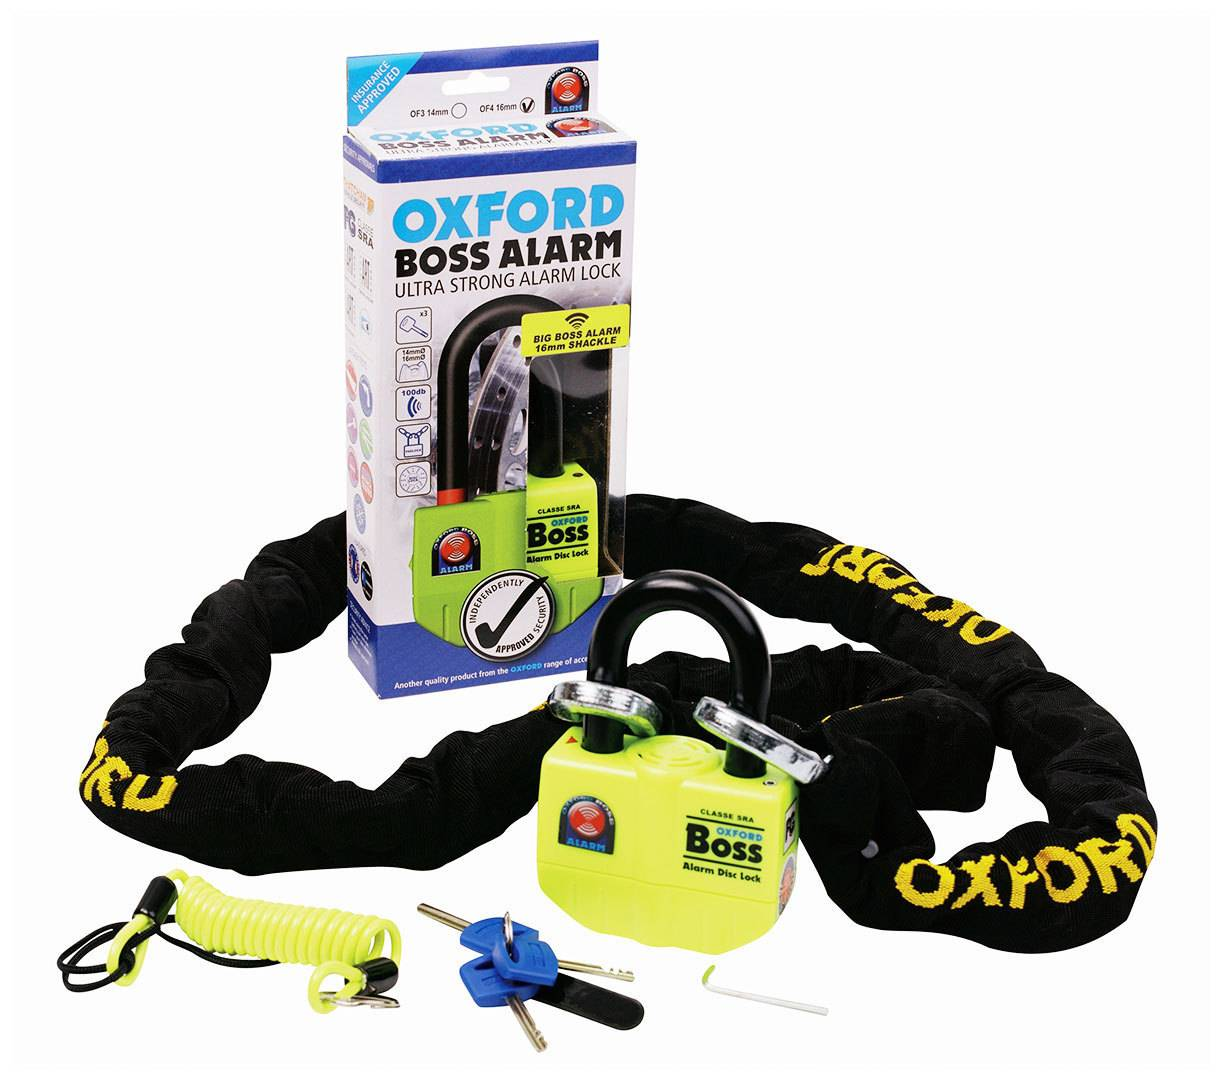 Oxford Boss Chain and Alarm Padlock Negro 200 cm